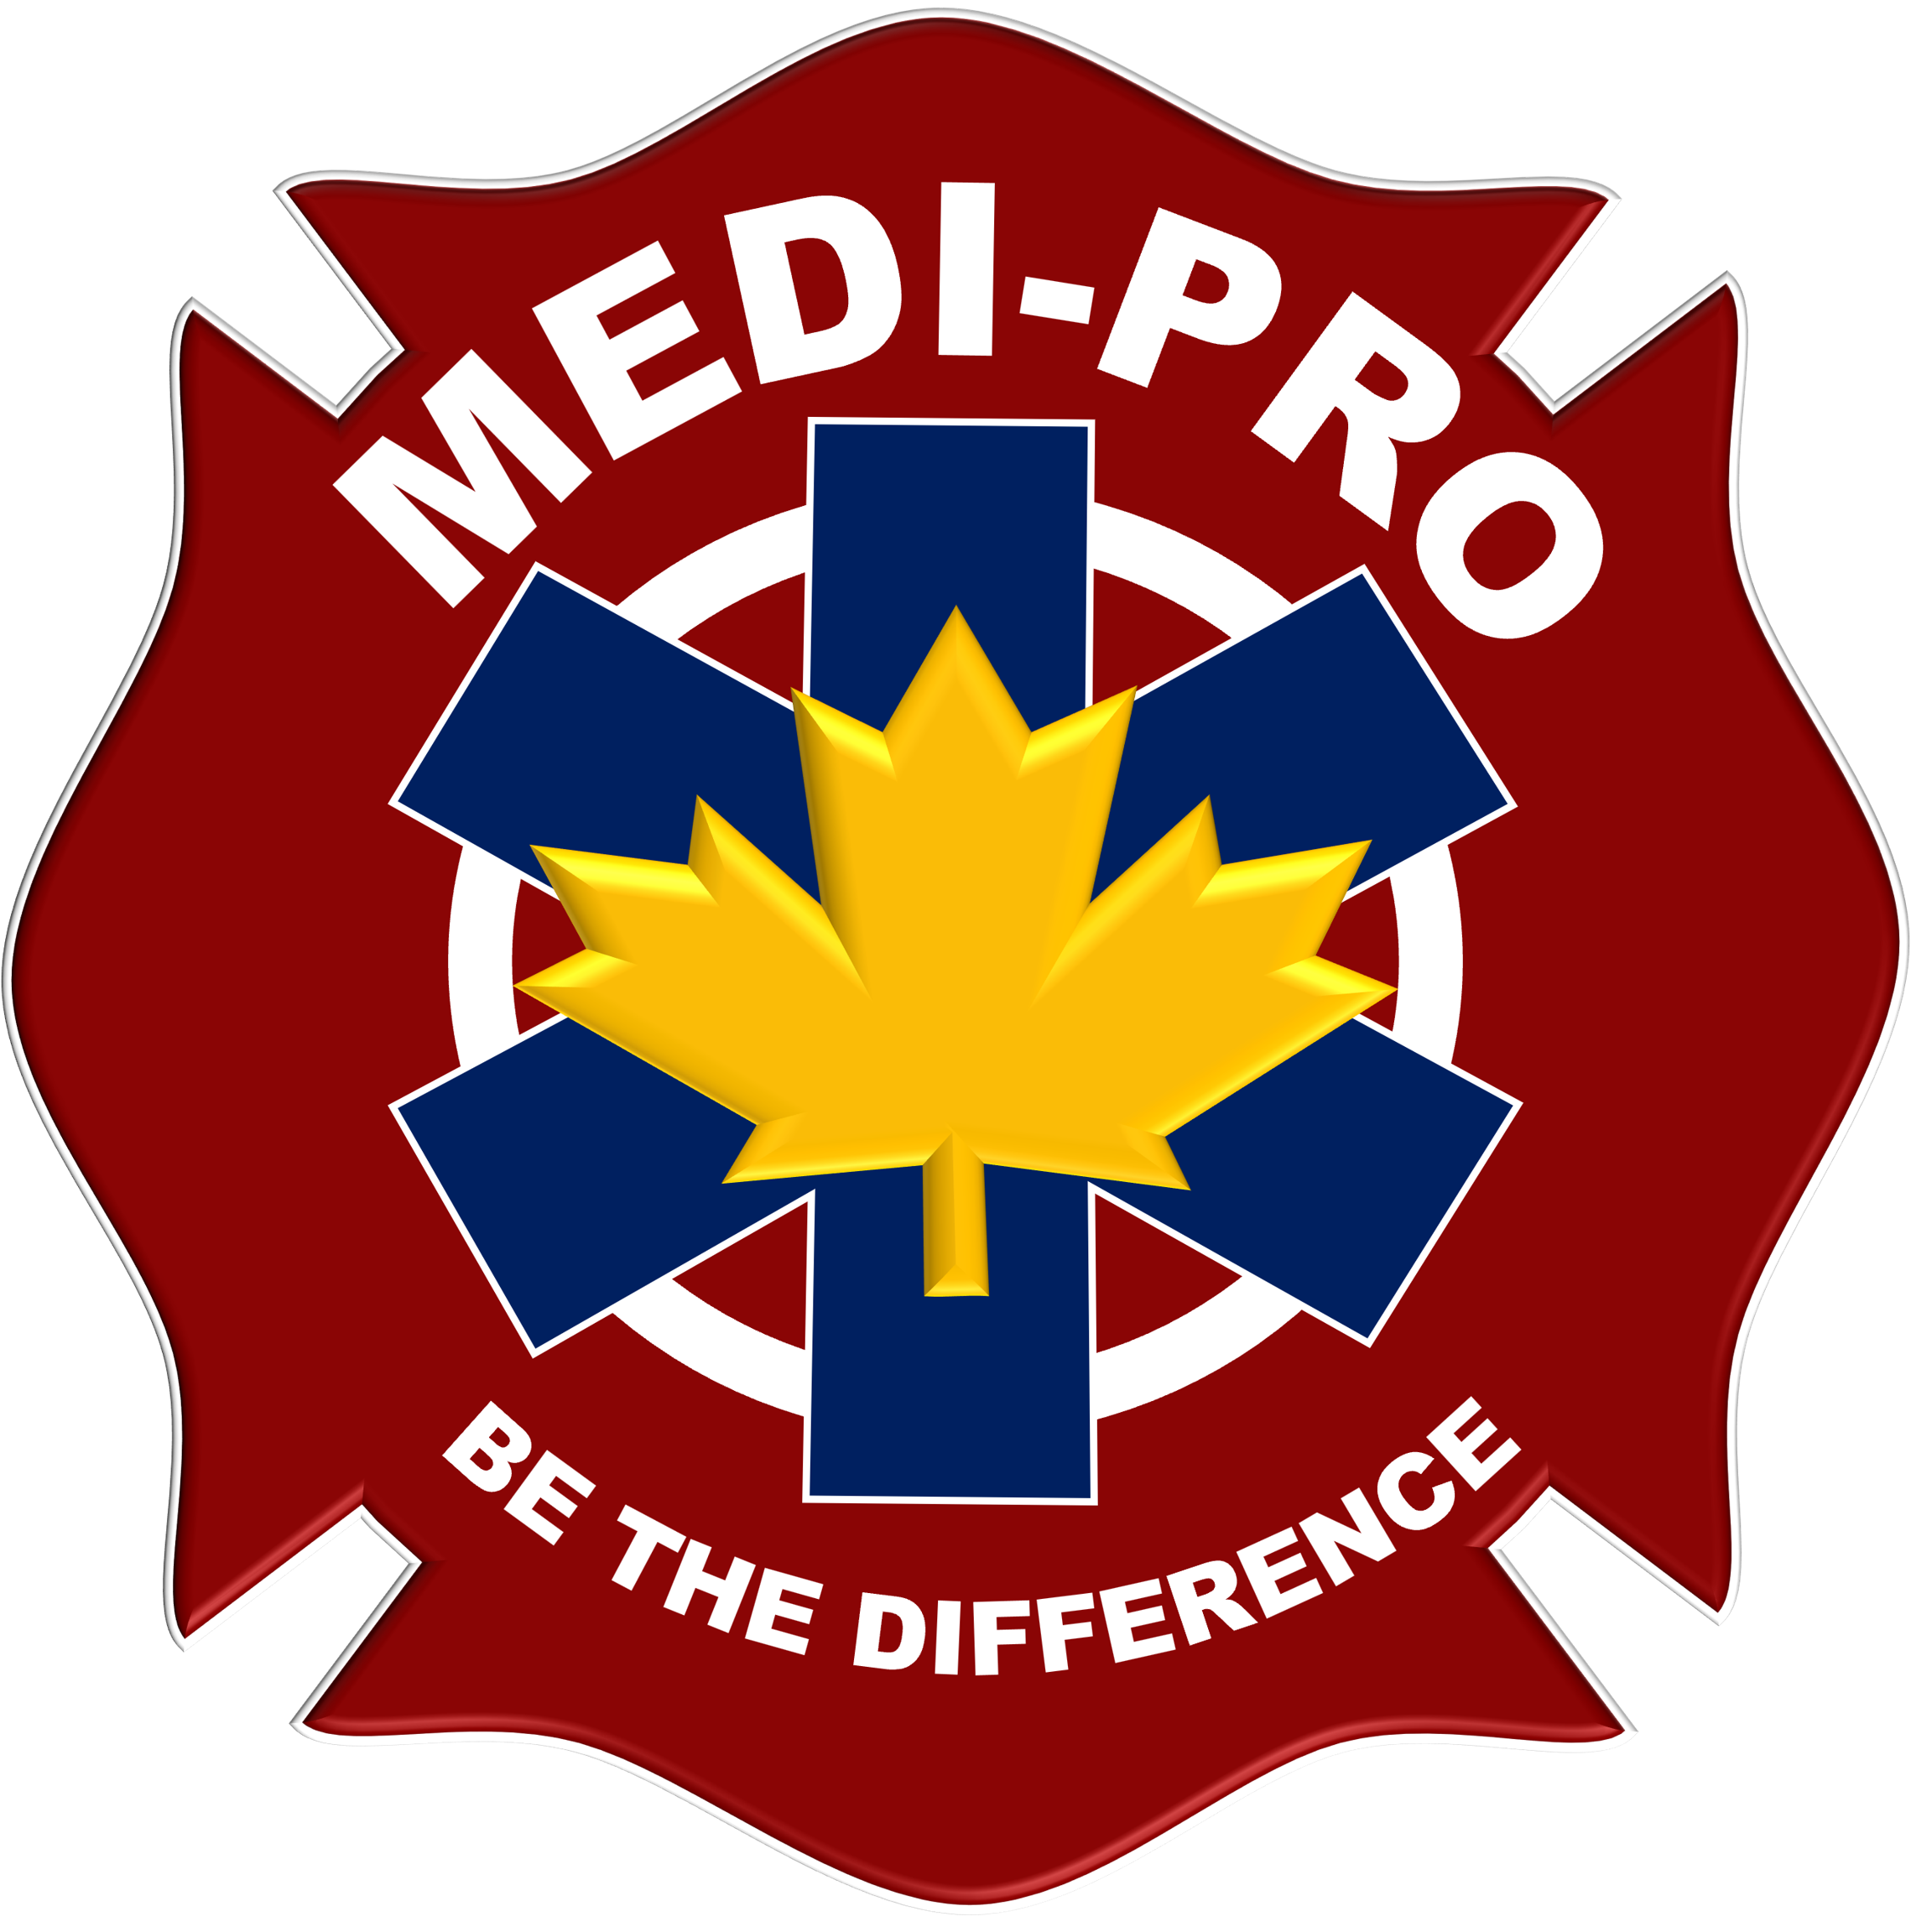 Frontline First Aid in Kelowna and Vancouver, BC